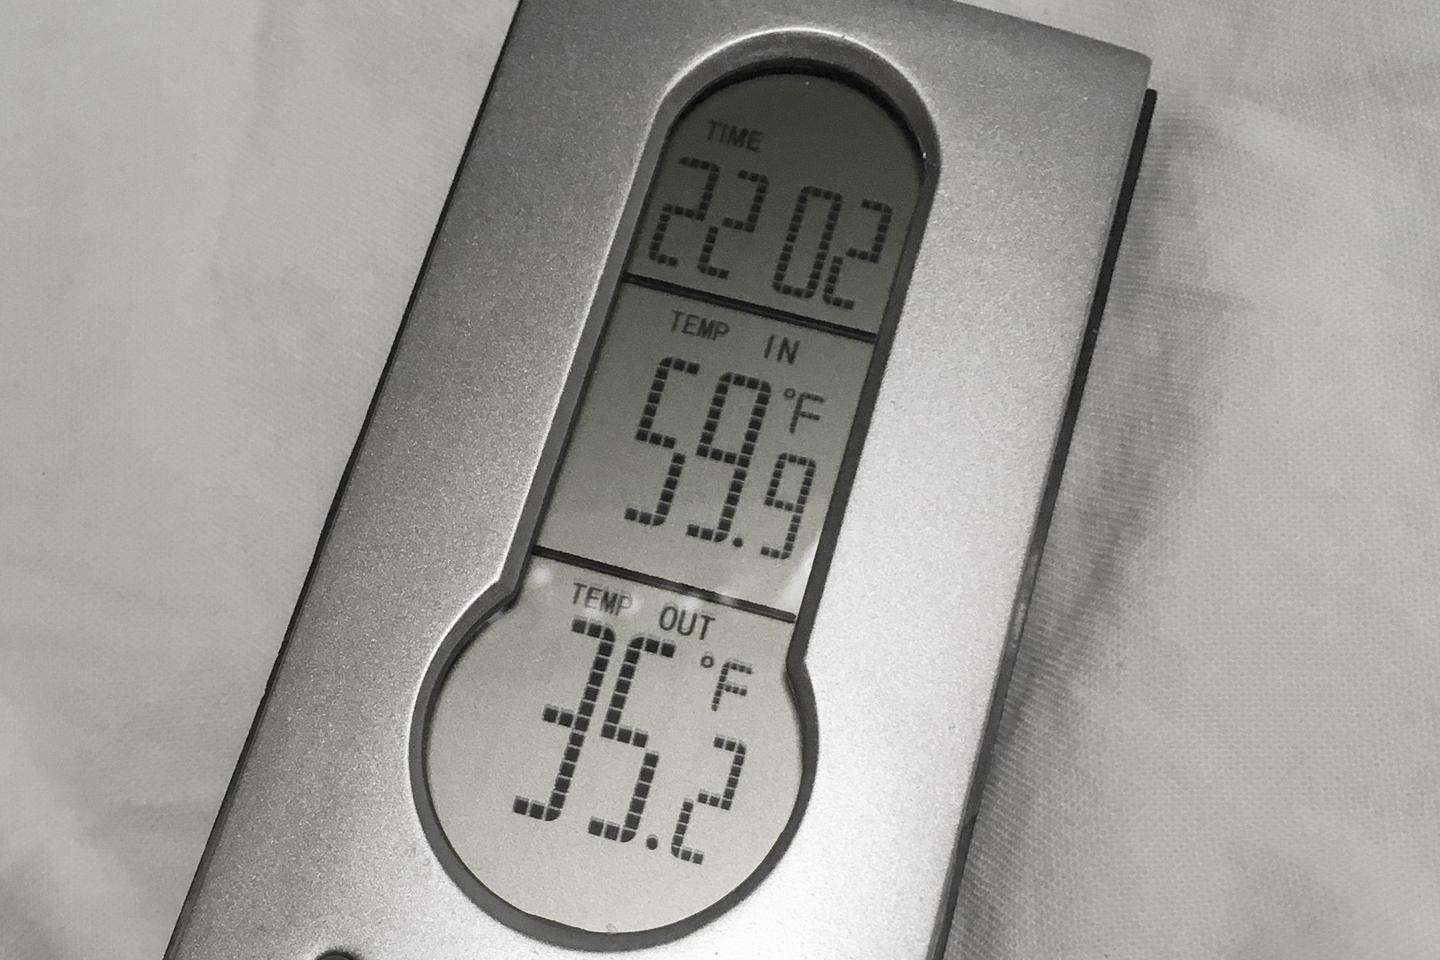 Polydrop designers tested the insulated shell in Big Bear, California, finding that the interior (heater off) maintained a temperature near 60° F (15° C)while theoutside was down near 35° F (2° C)